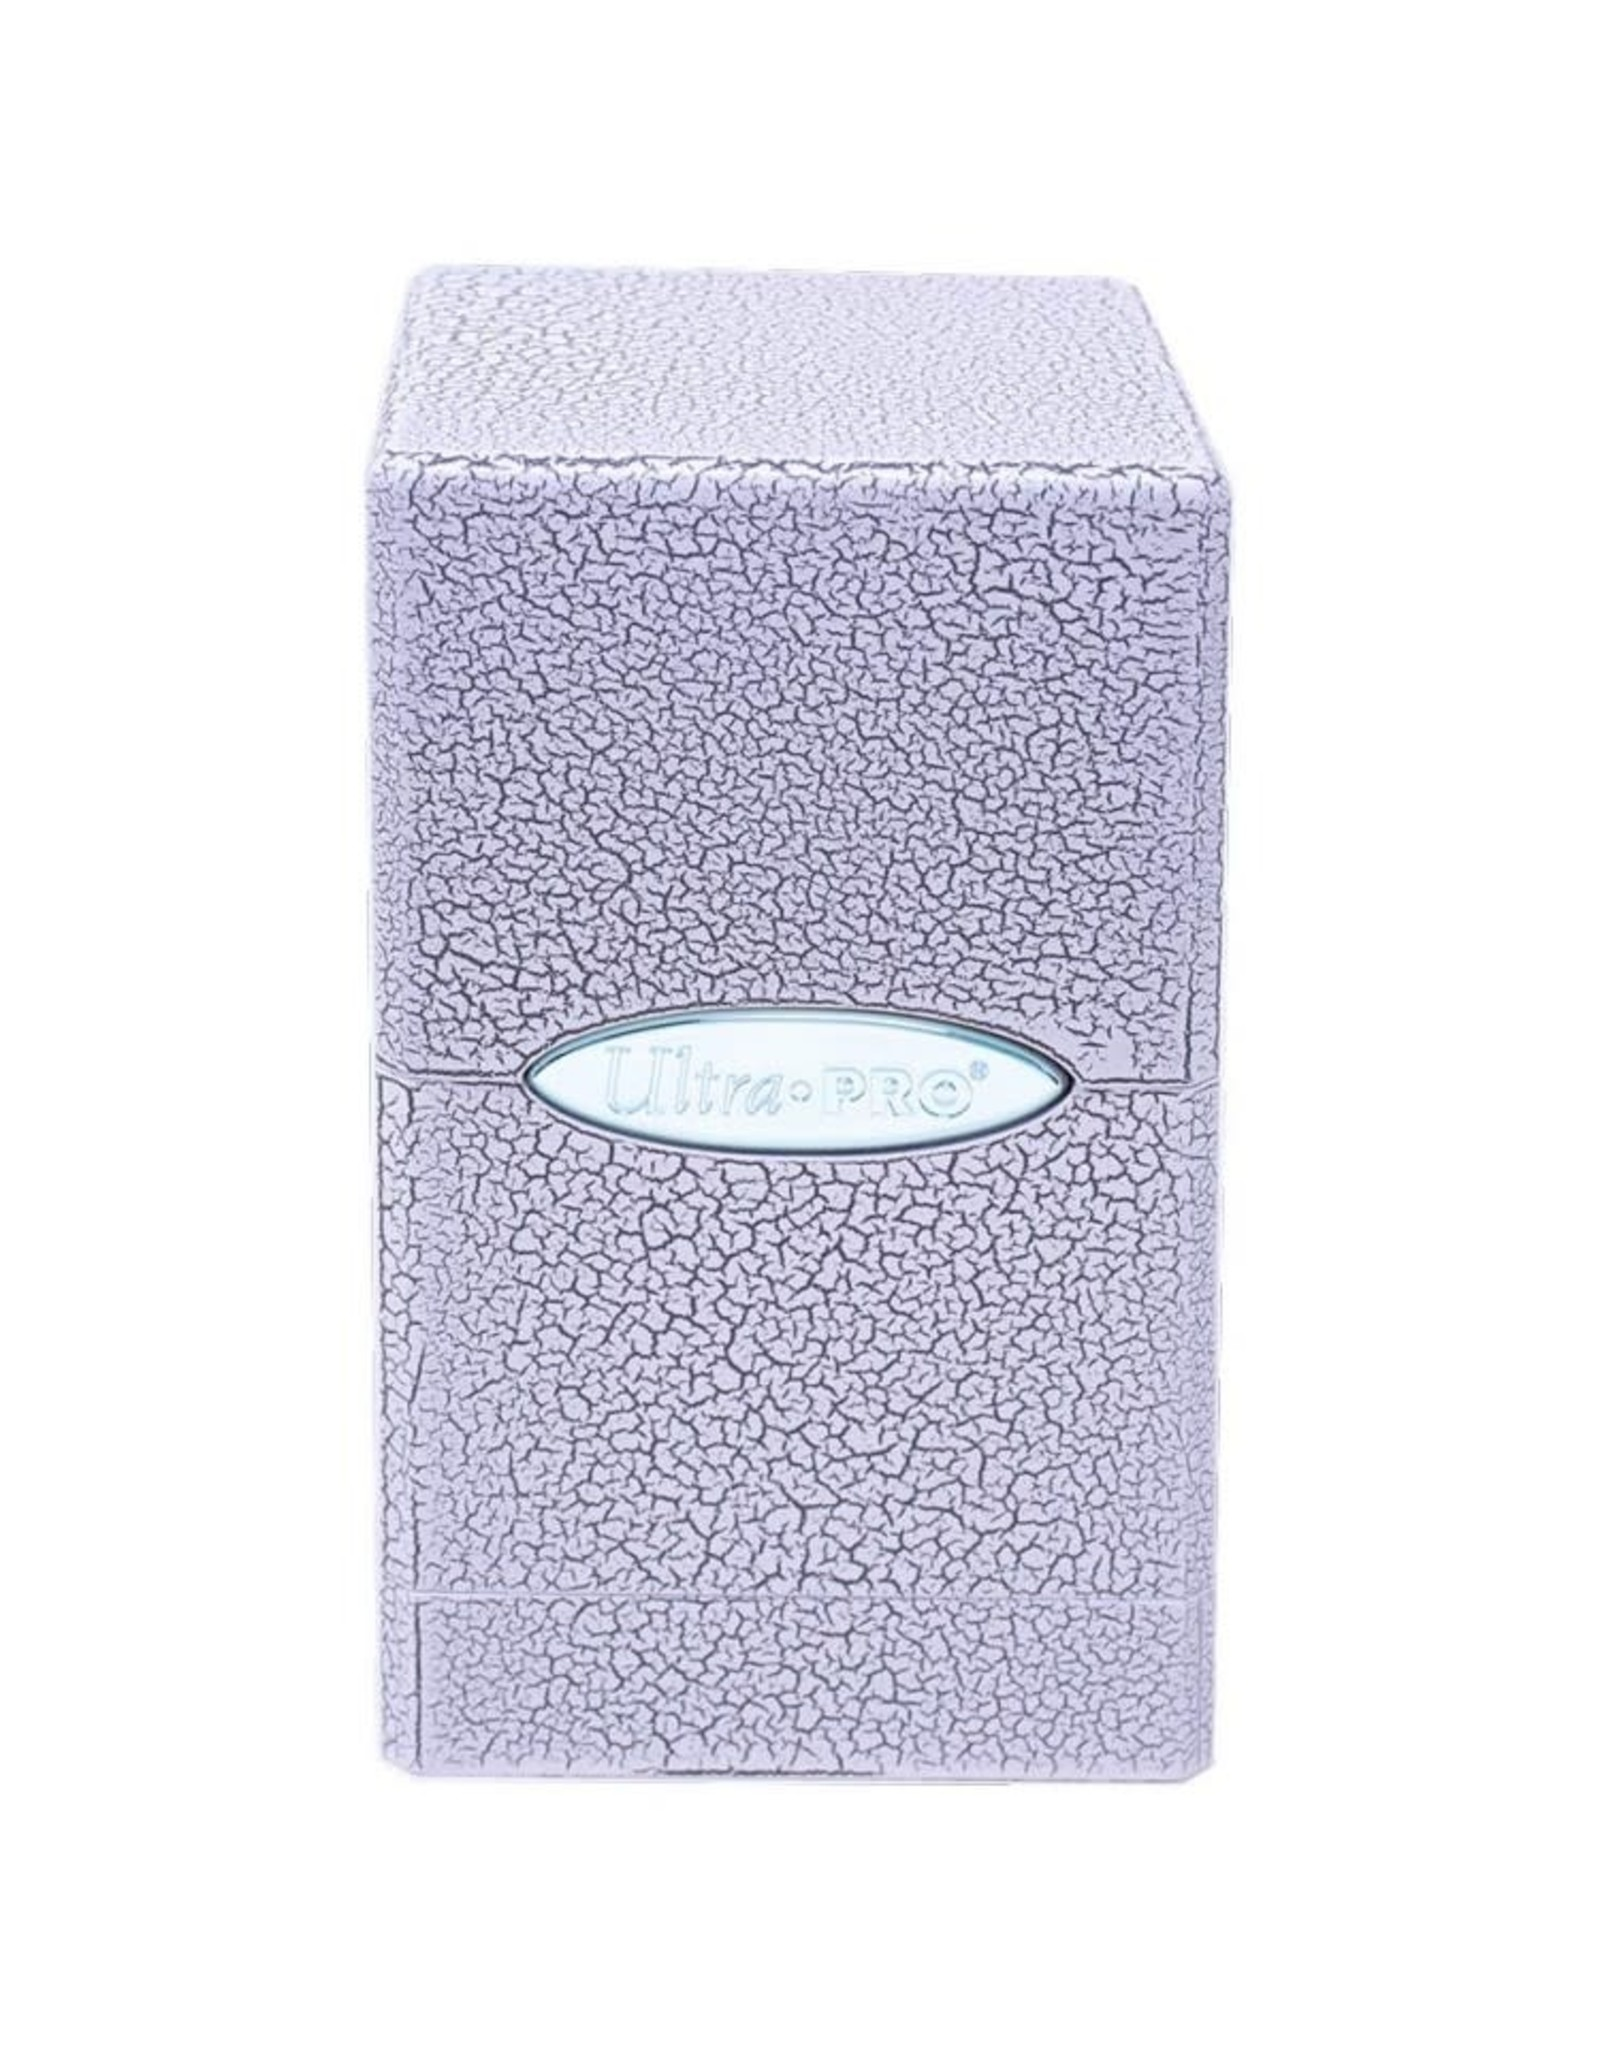 Ultra Pro Ultra Pro: Satin Tower Ivory Crackle Deck Box